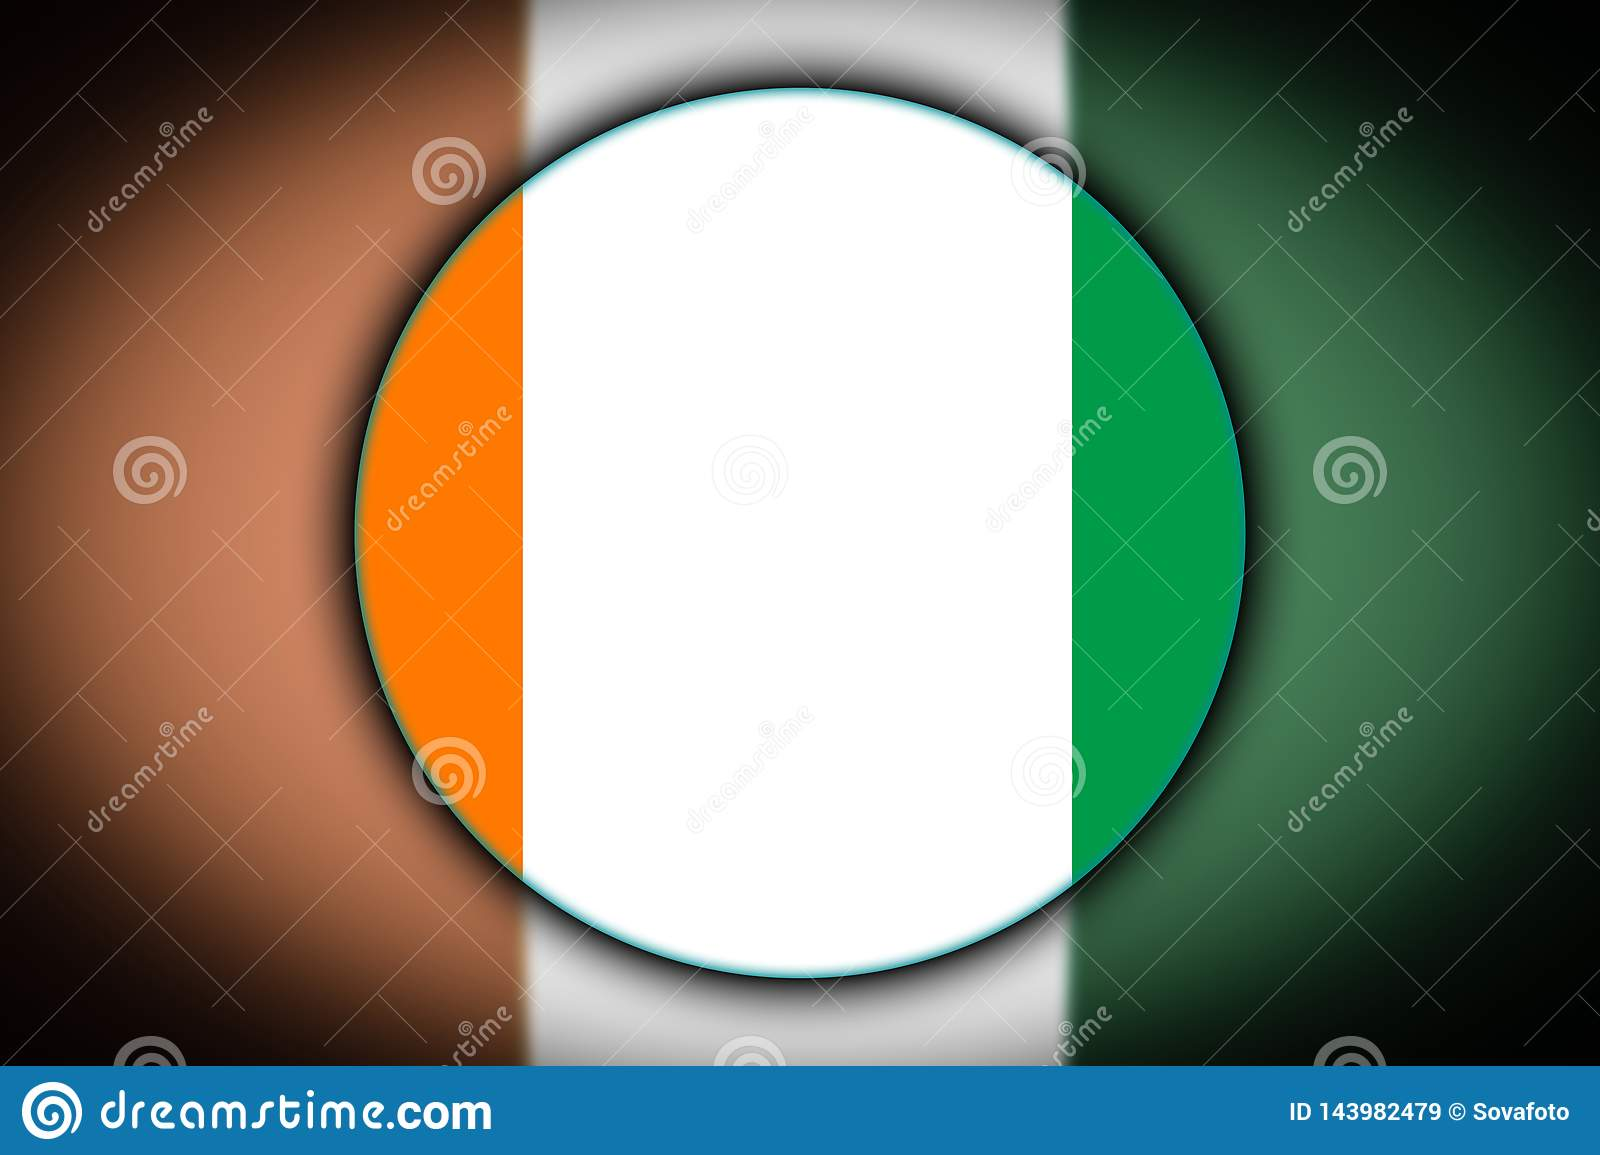 Flag in the shape of a circle.